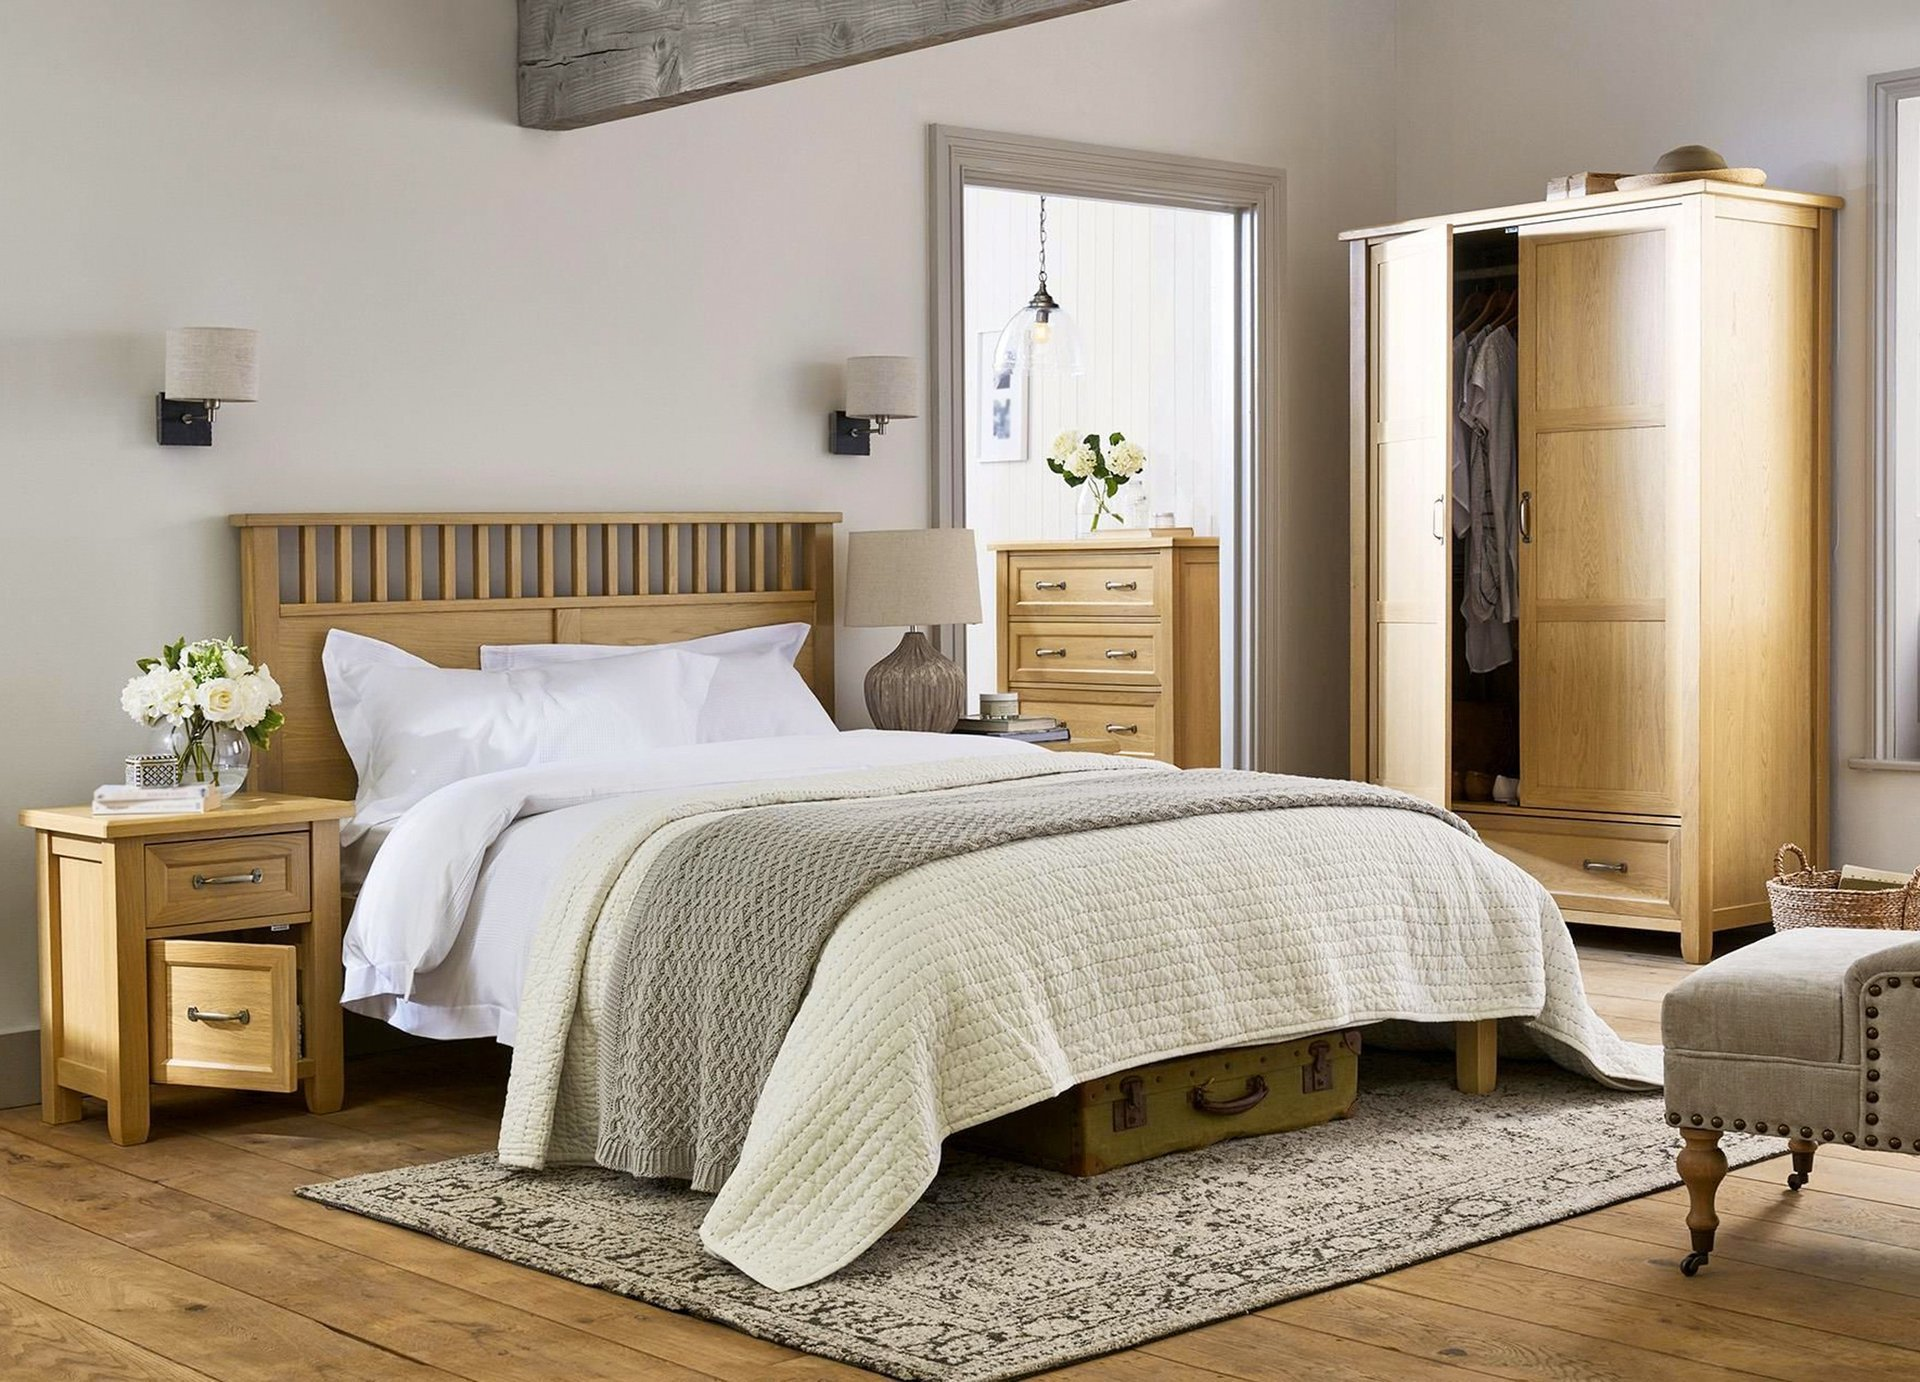 Best Custom Bedroom Furniture Karmal Skillington Nashville Tn With Pictures